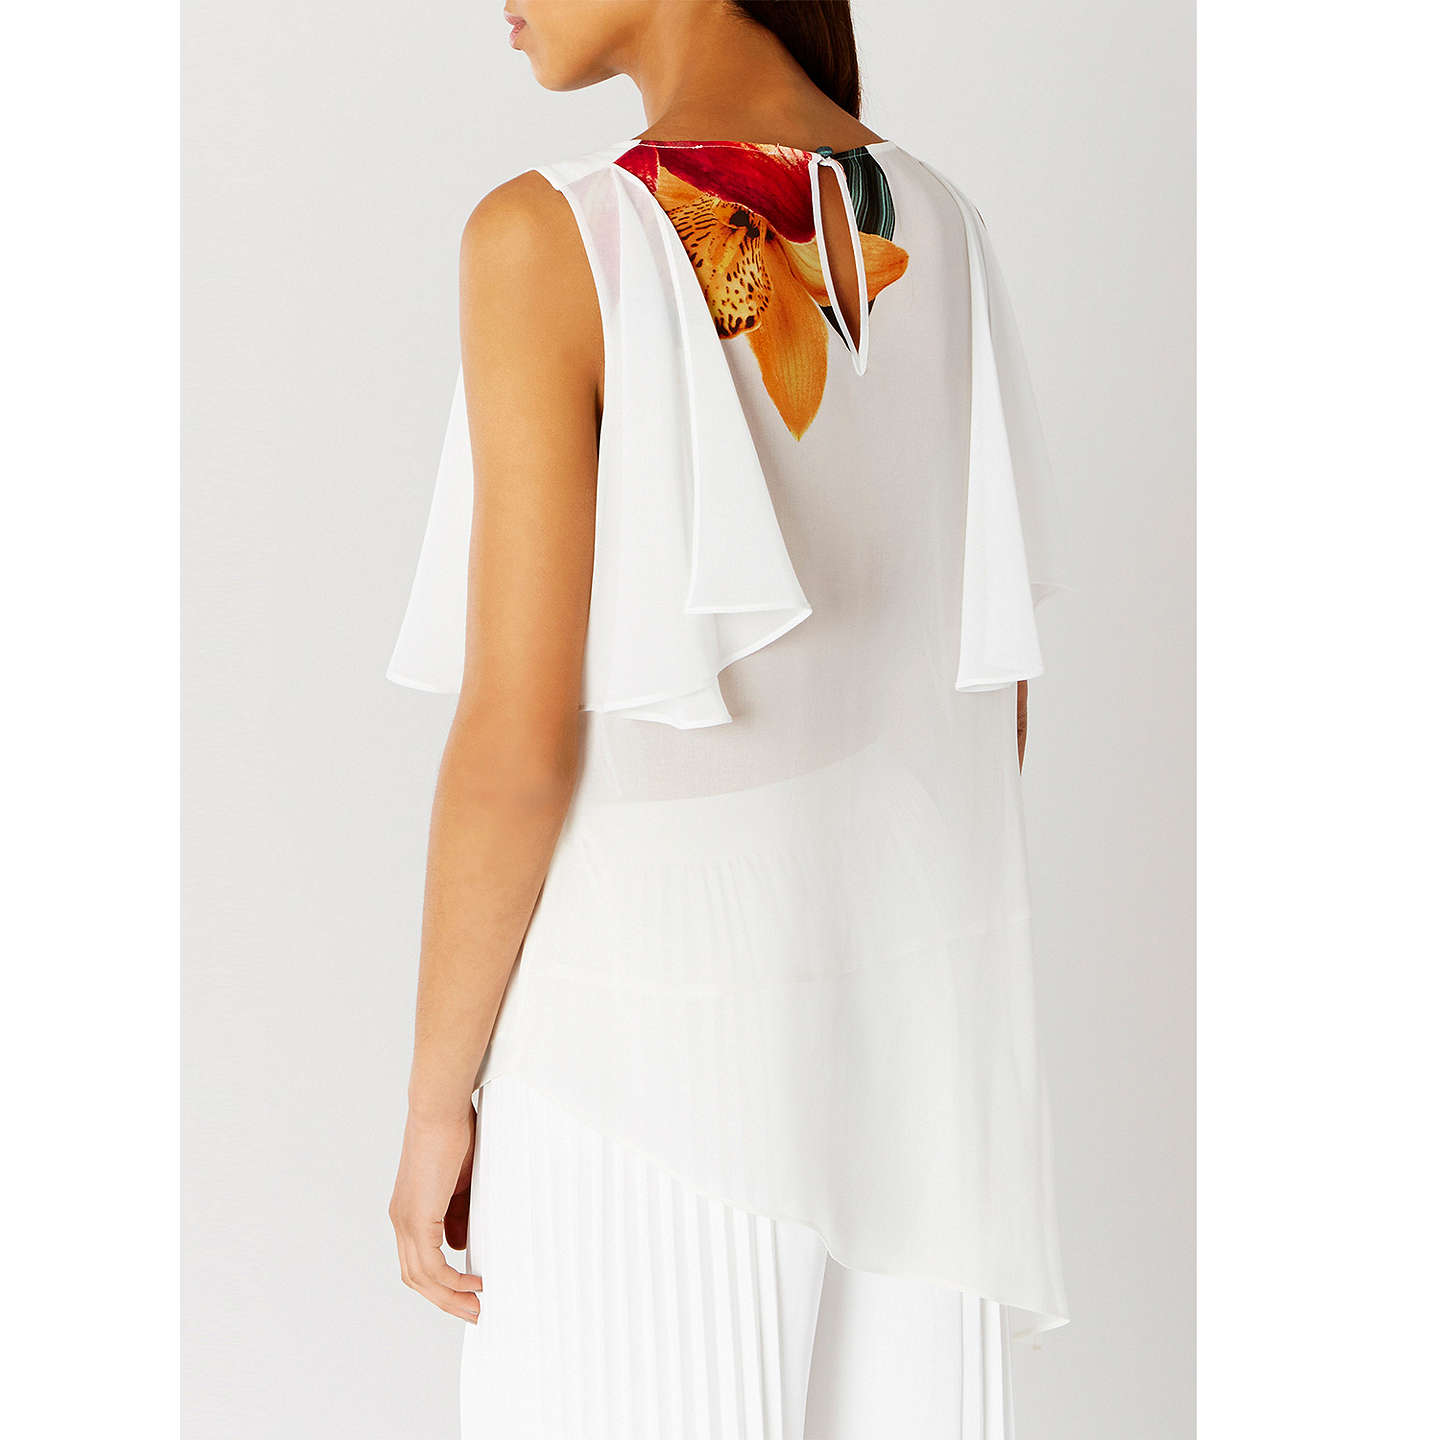 BuyCoast Marrakesh Soft Drape Top, Multi, 6 Online at johnlewis.com